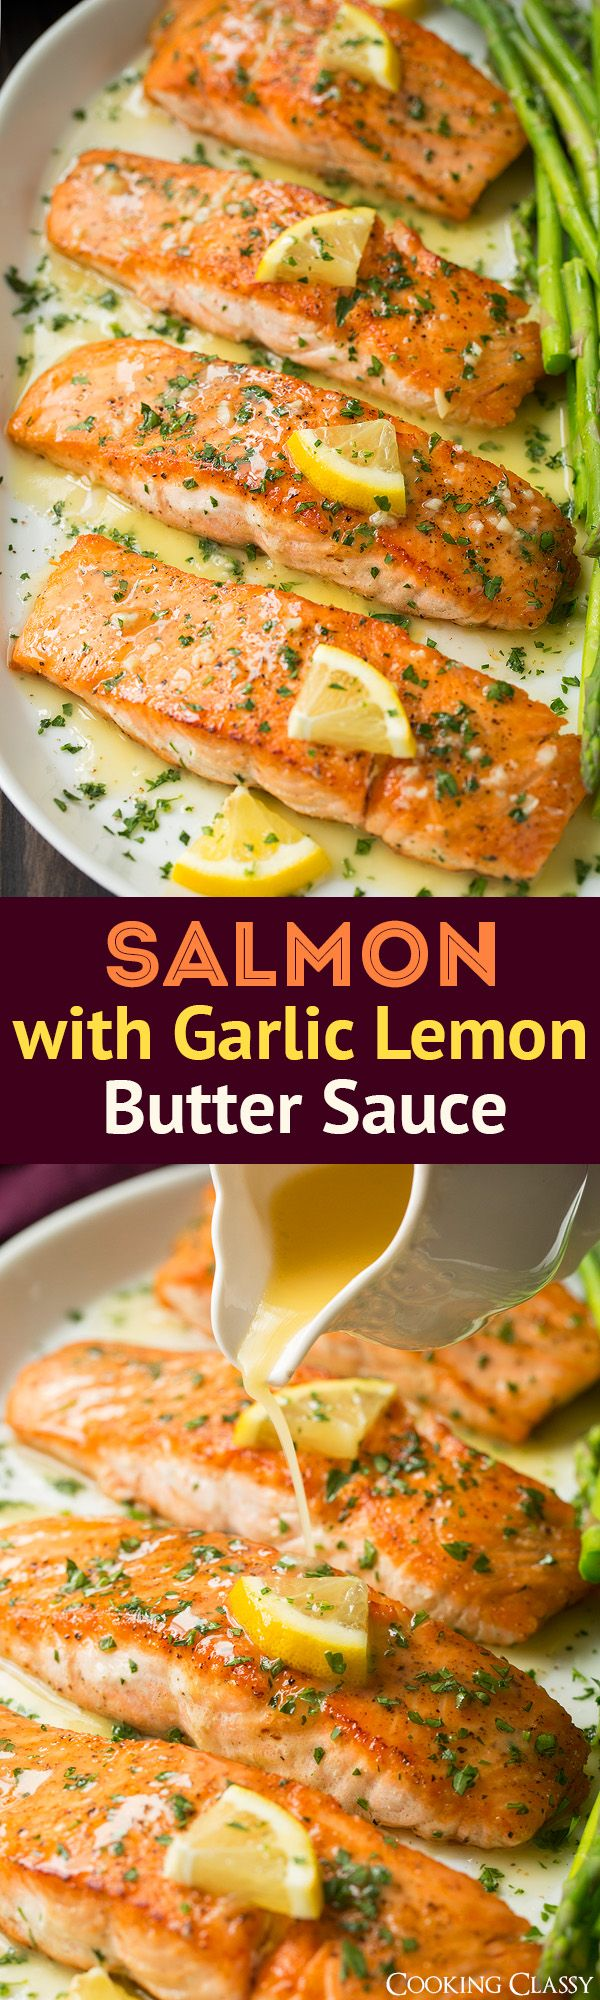 Butter sauce recipes for salmon